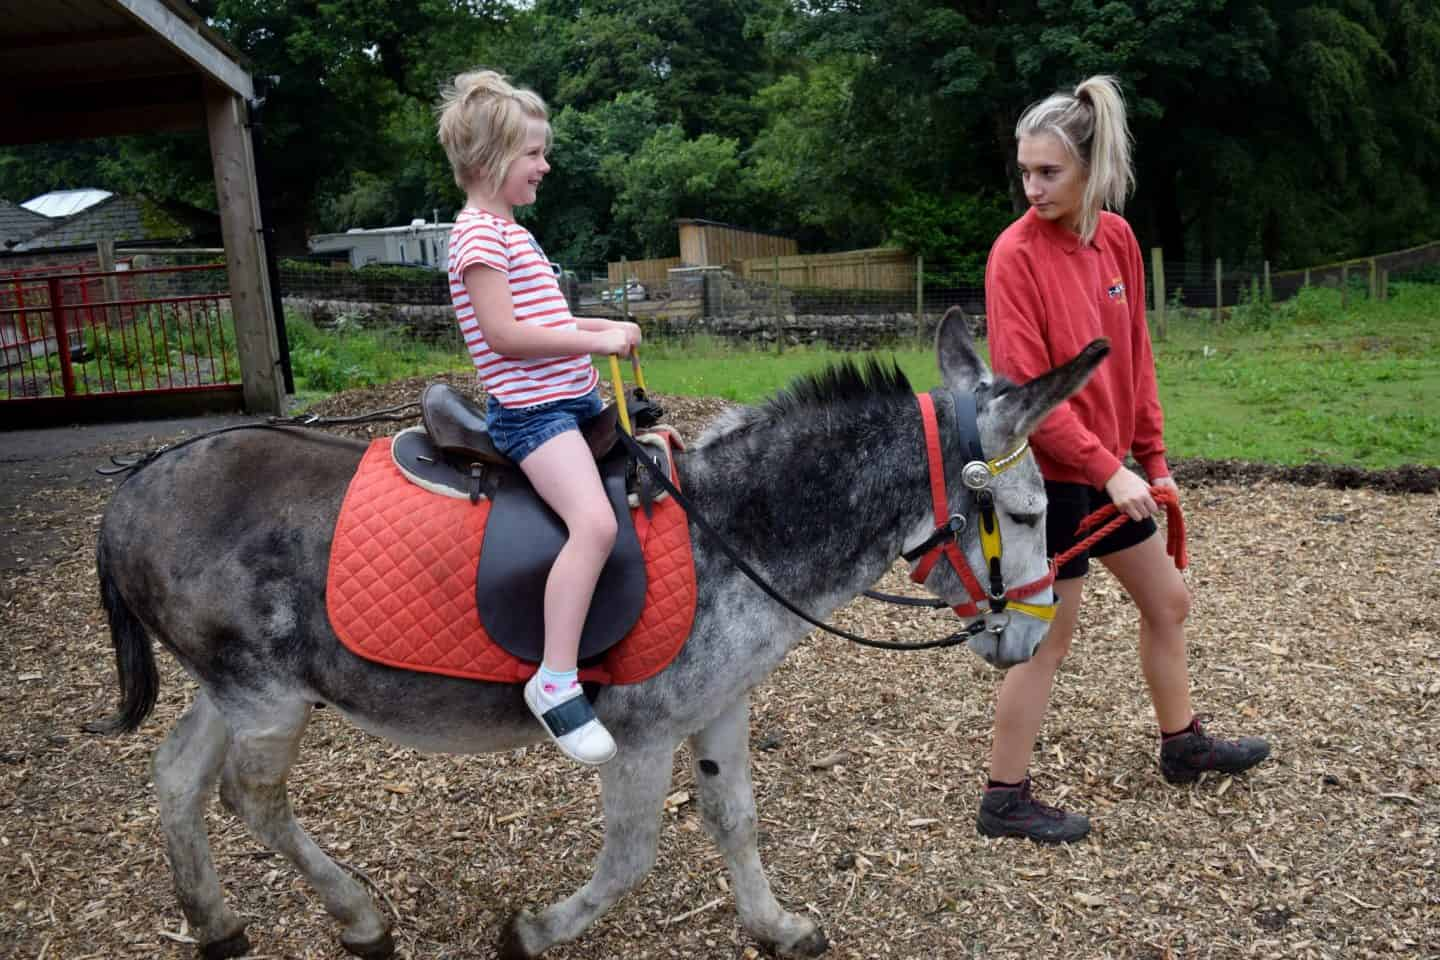 Little girl riding a donkey at Smithills Farm